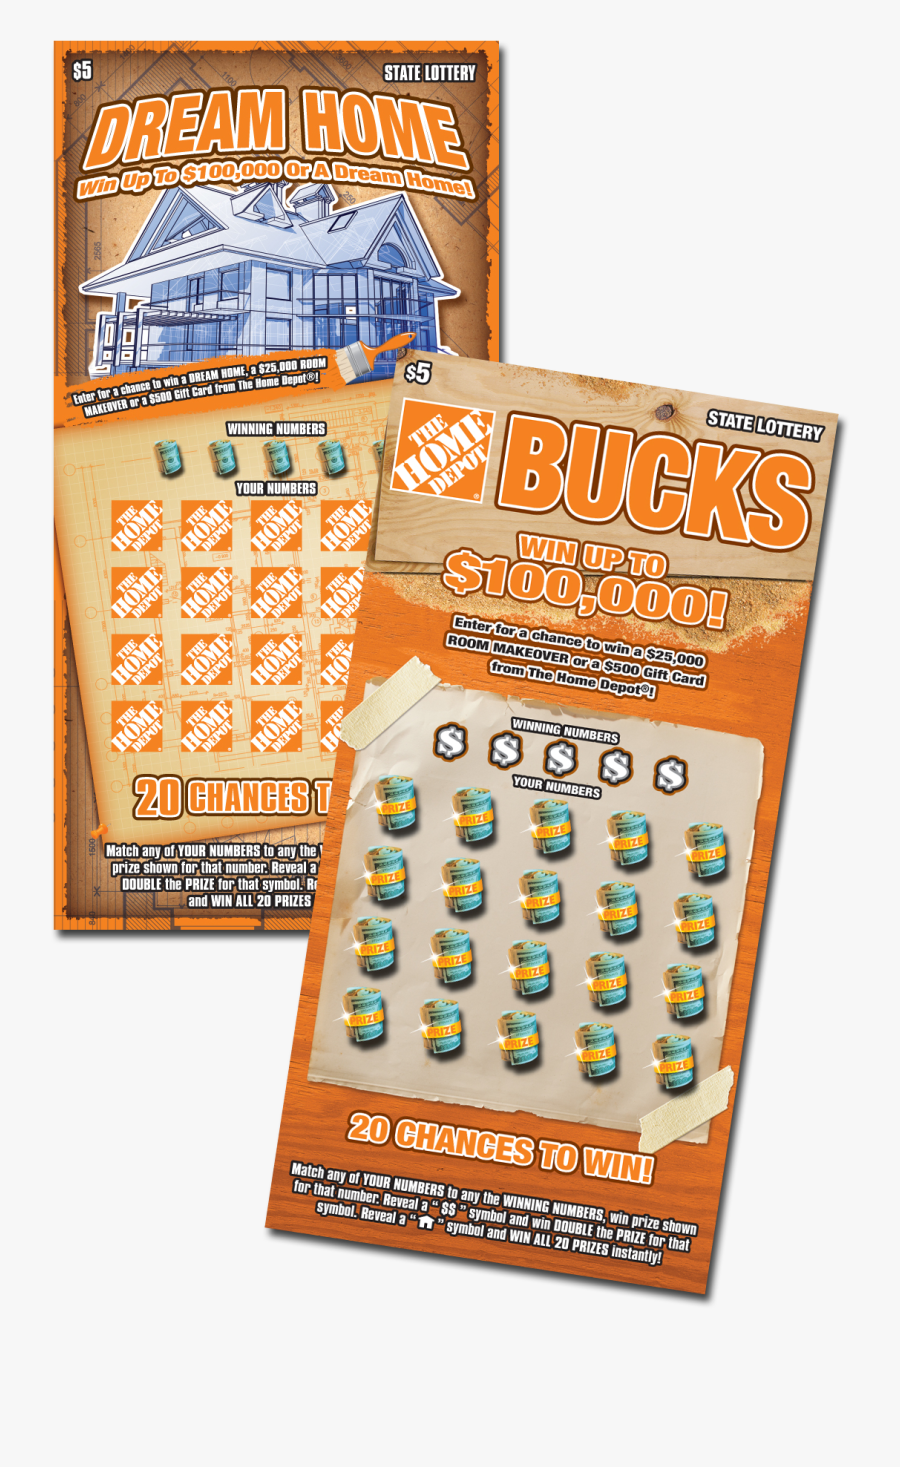 Clip Art Lottery Tickets Images.